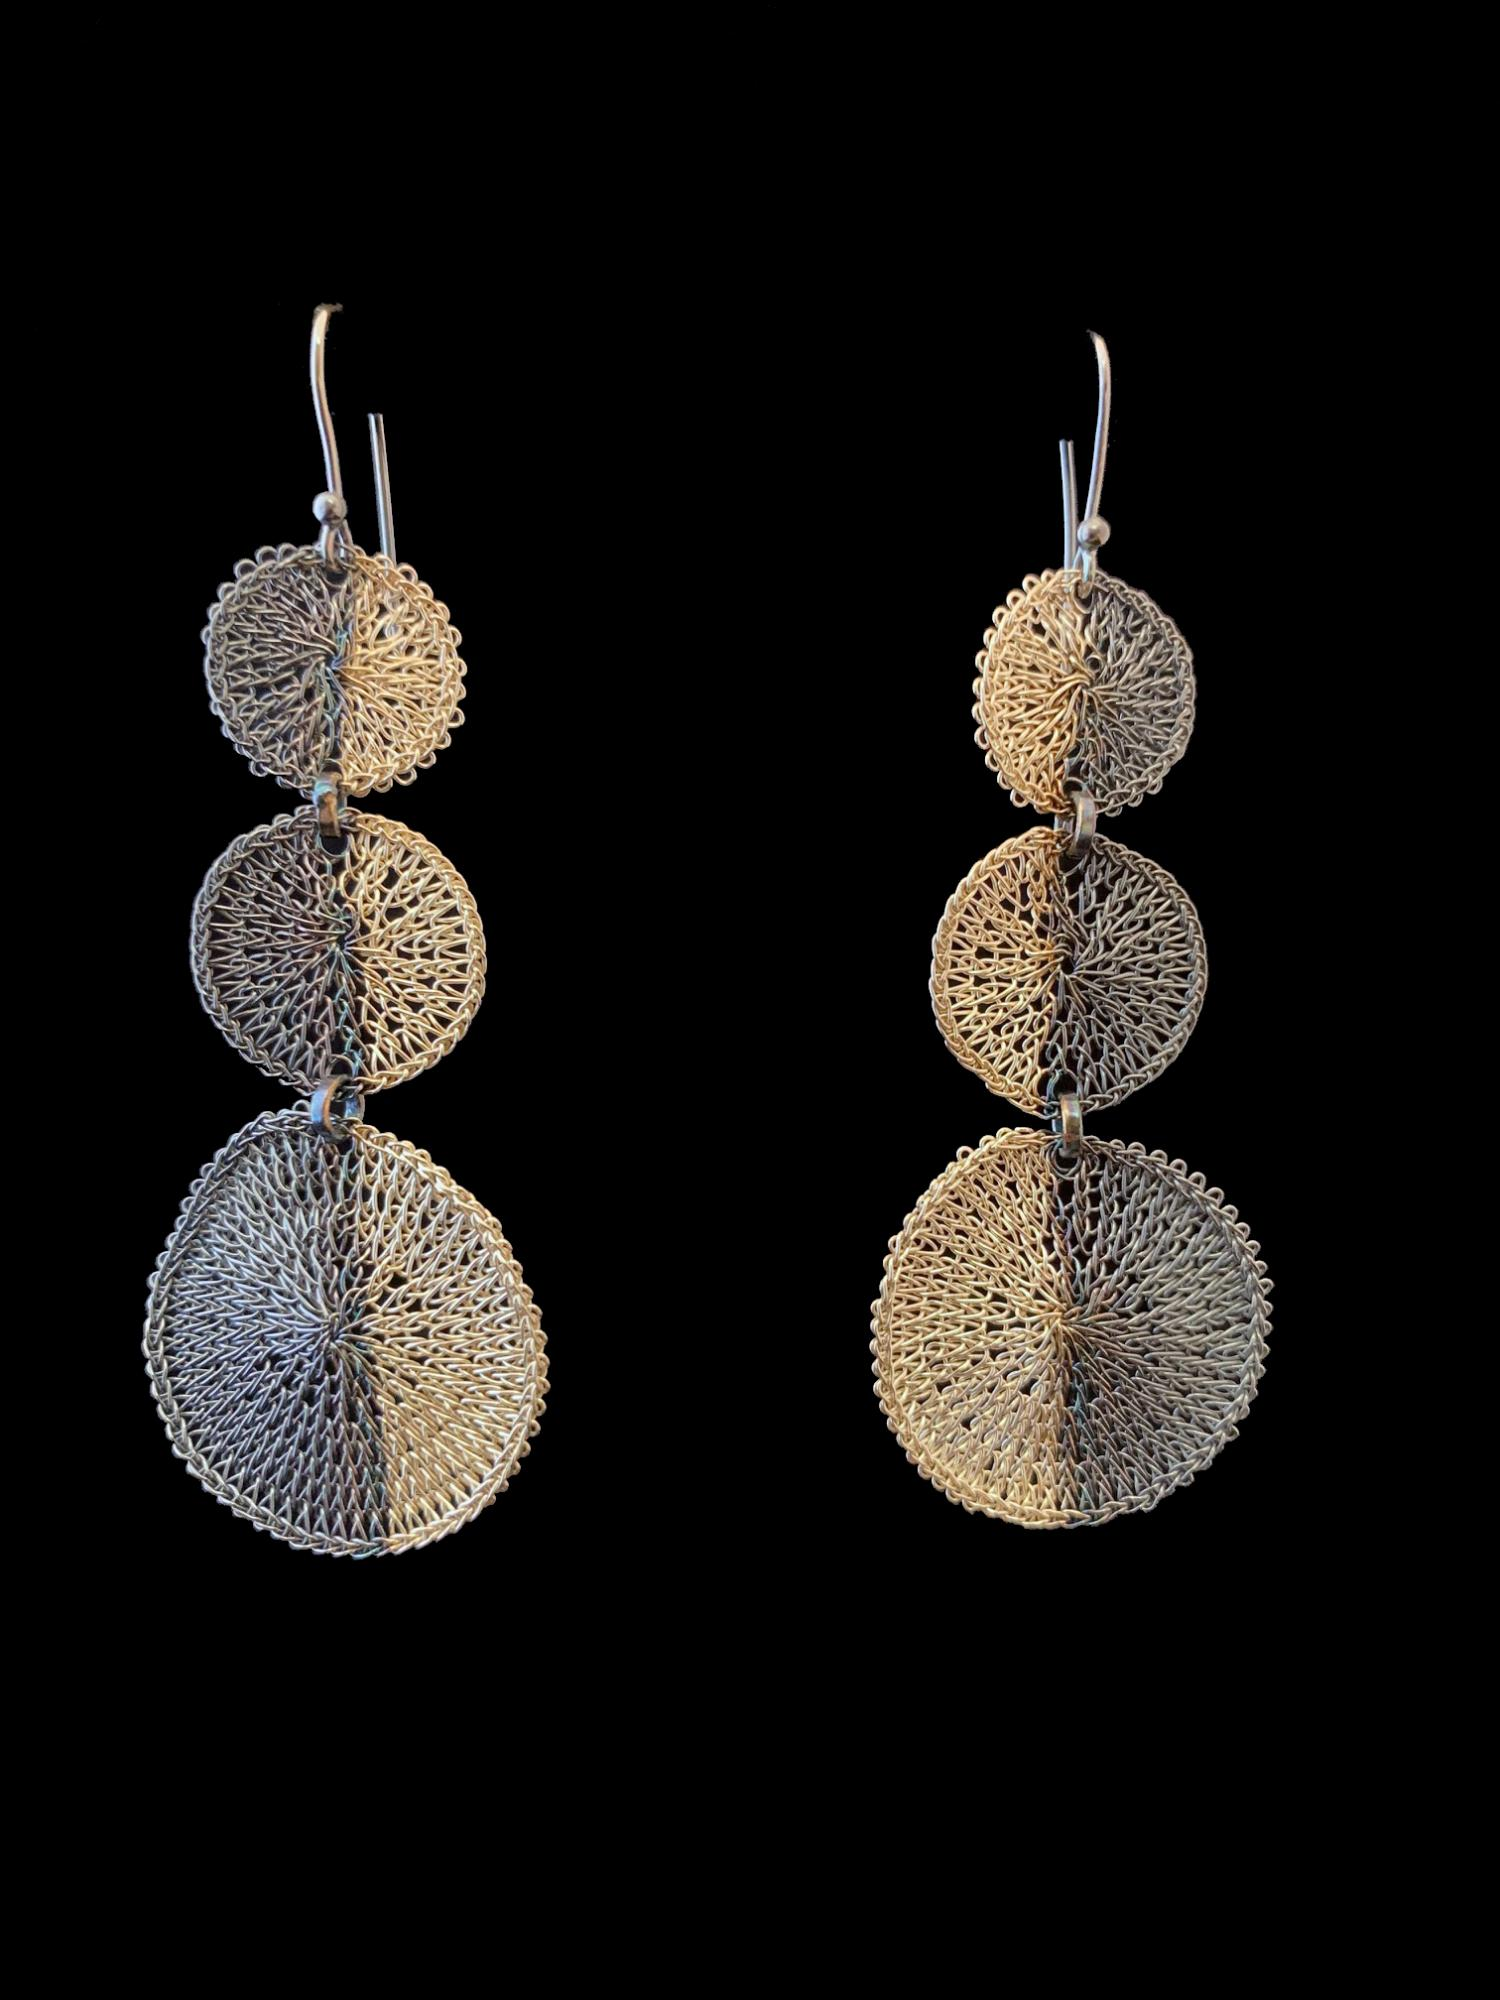 Woven Silver Circle Earrings (61WB) - Sold